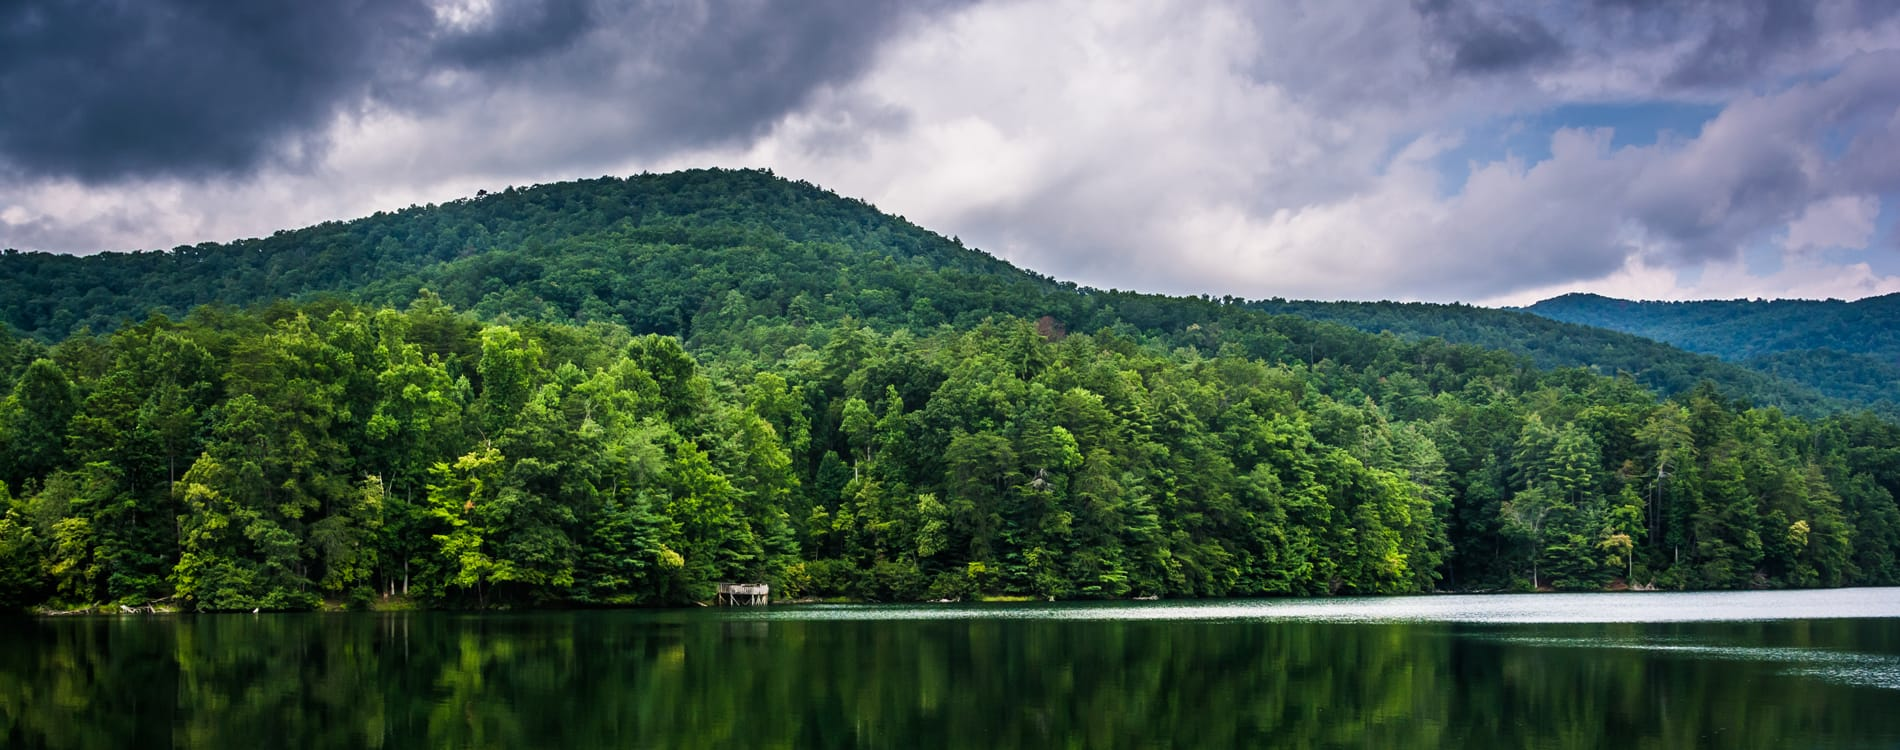 Helen, GA - Unicoi Lake